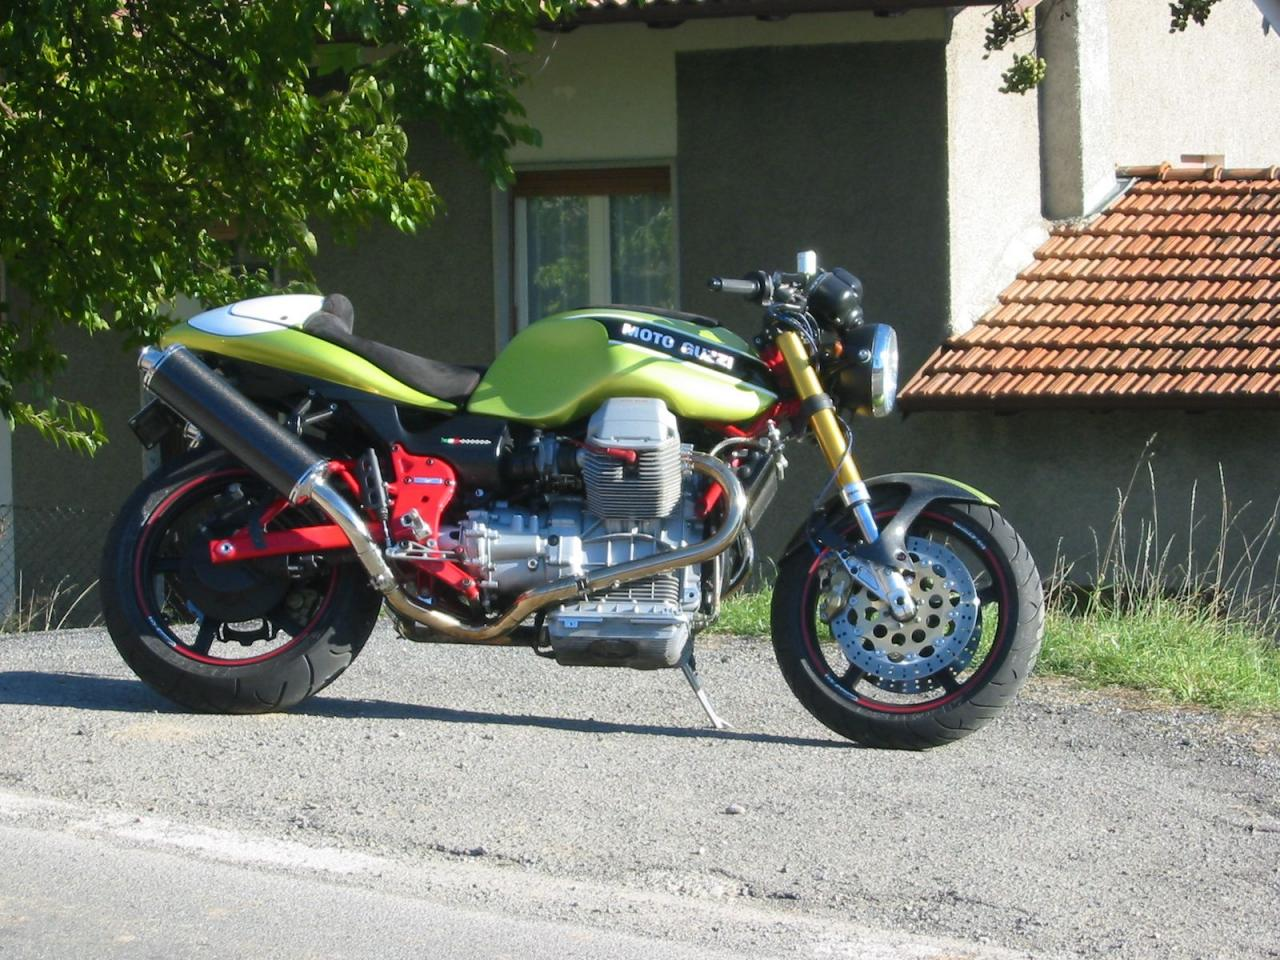 Moto Guzzi 1000 Daytona Injection images #108543